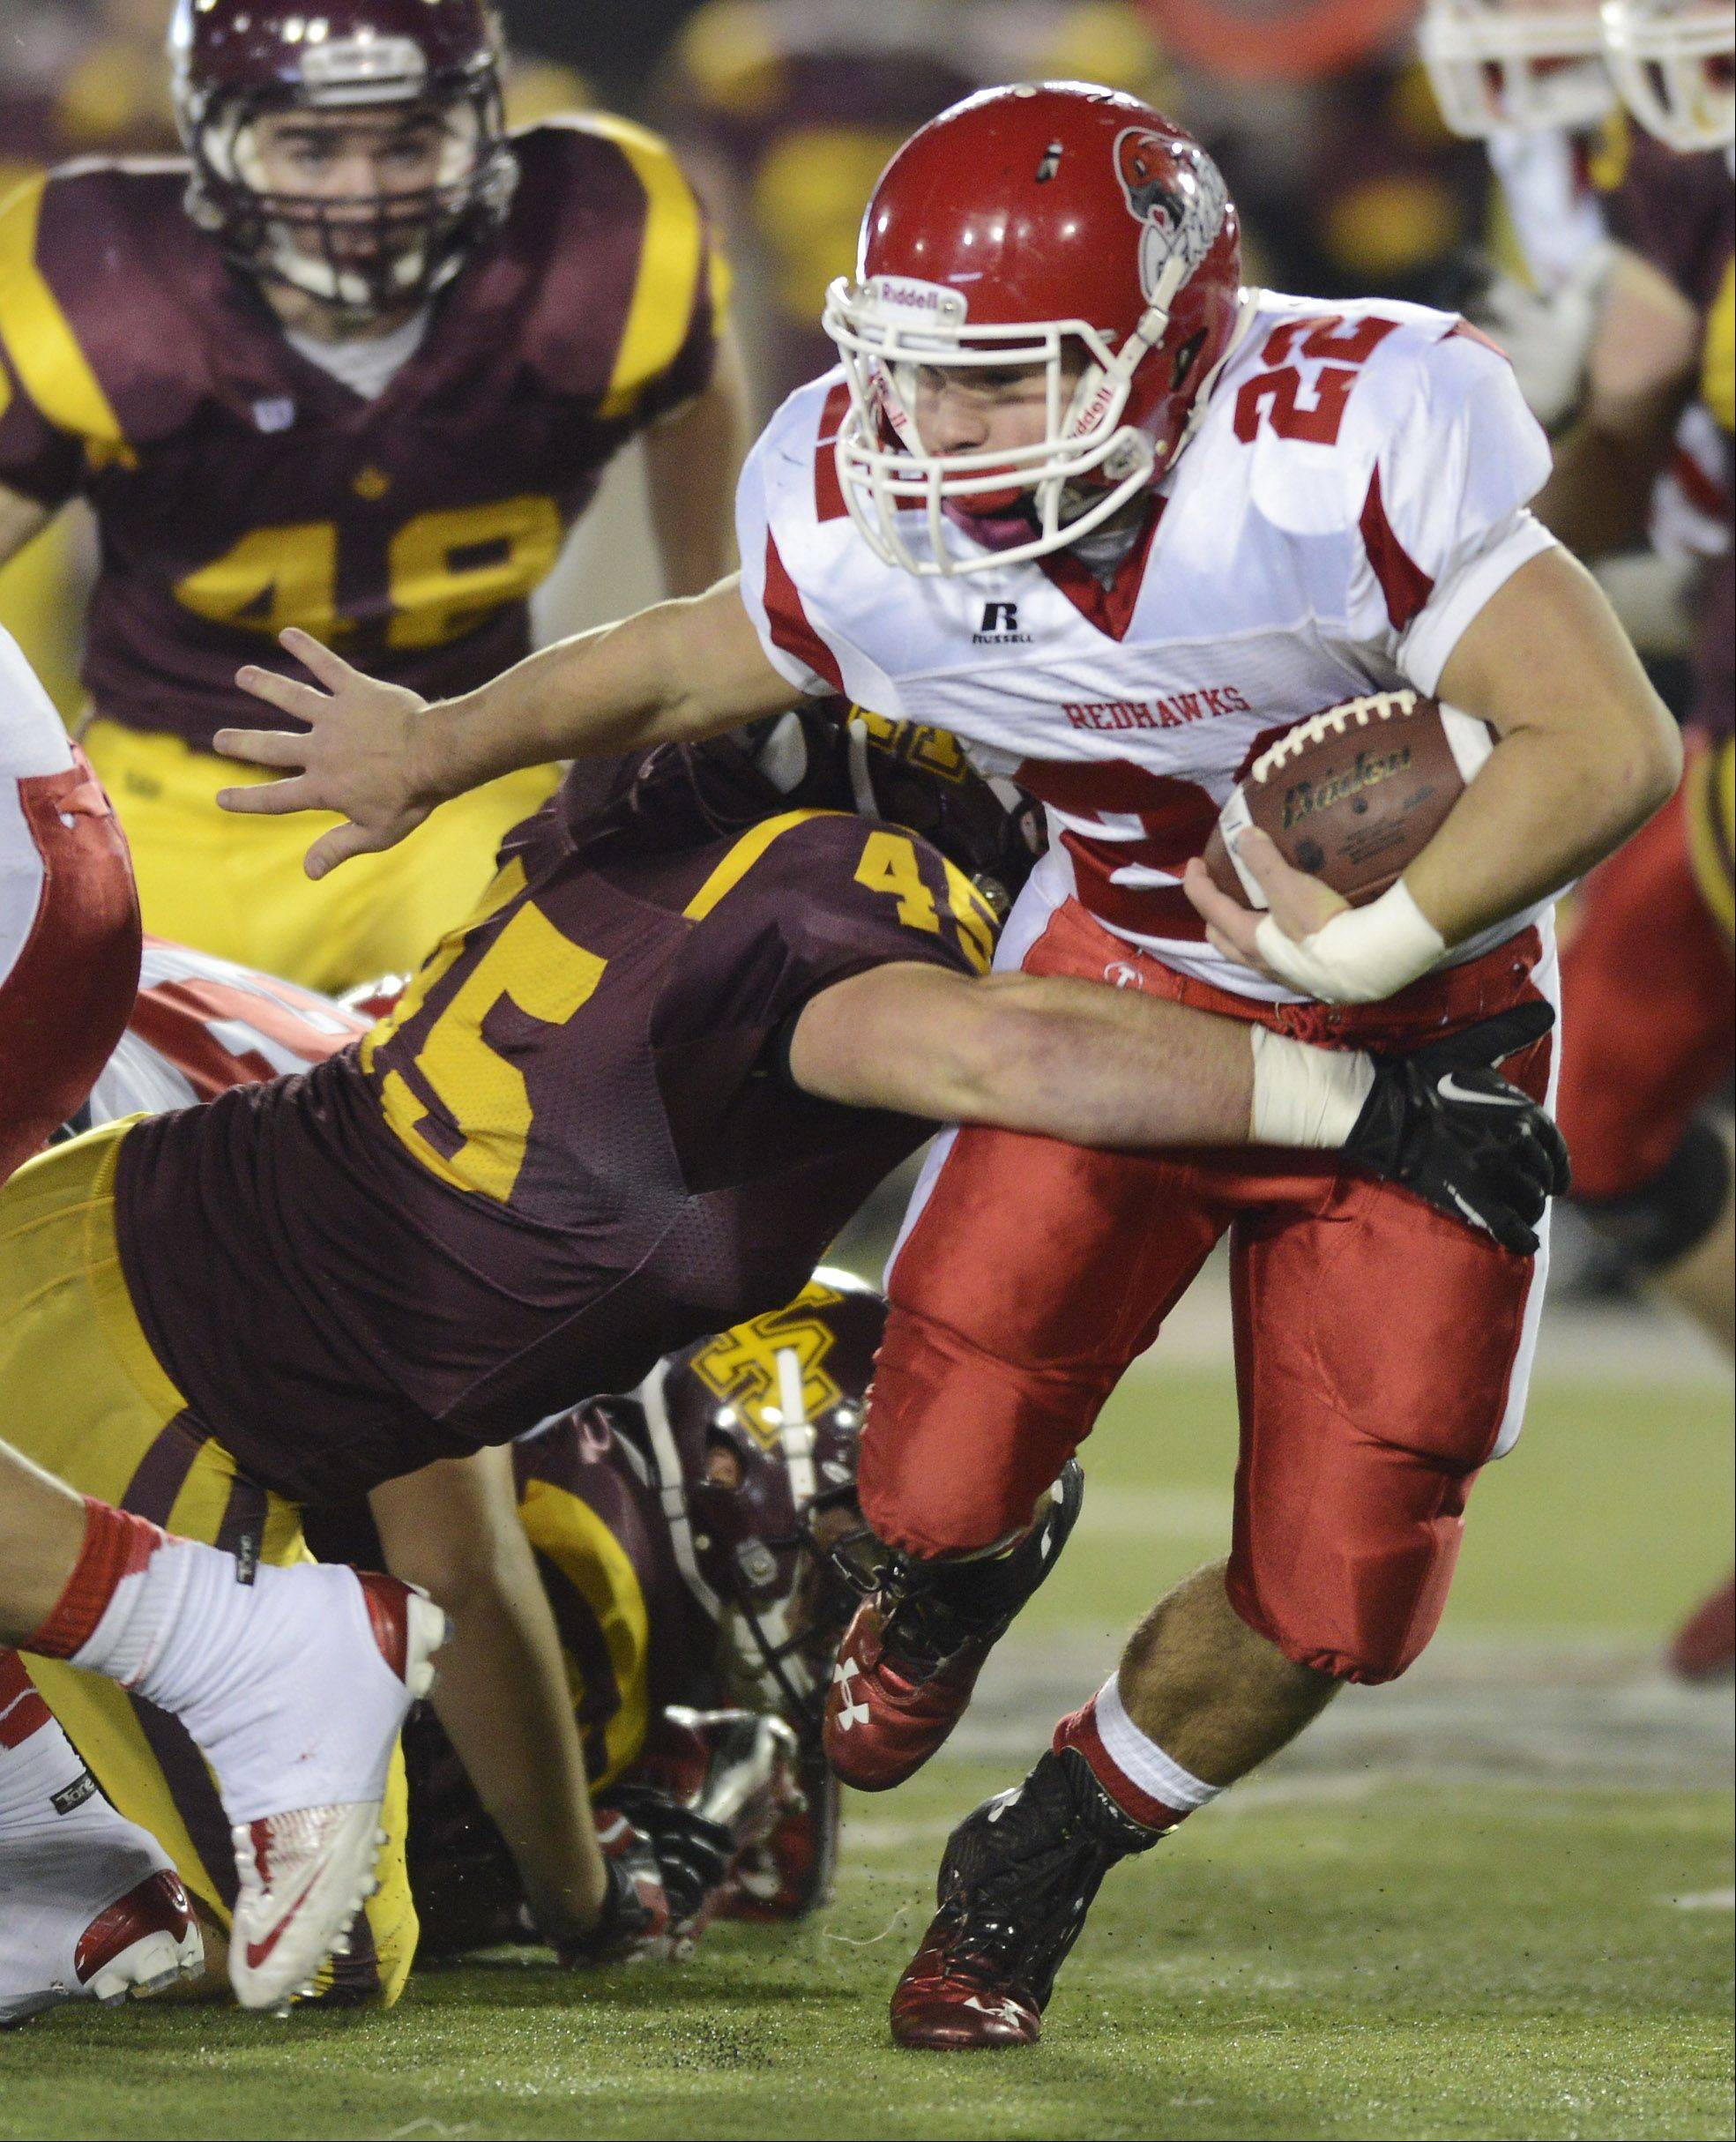 Naperville Central's Kevin Clifford gets past Loyola's Brian O'Brien during the Class 8A football final in DeKalb Saturday.